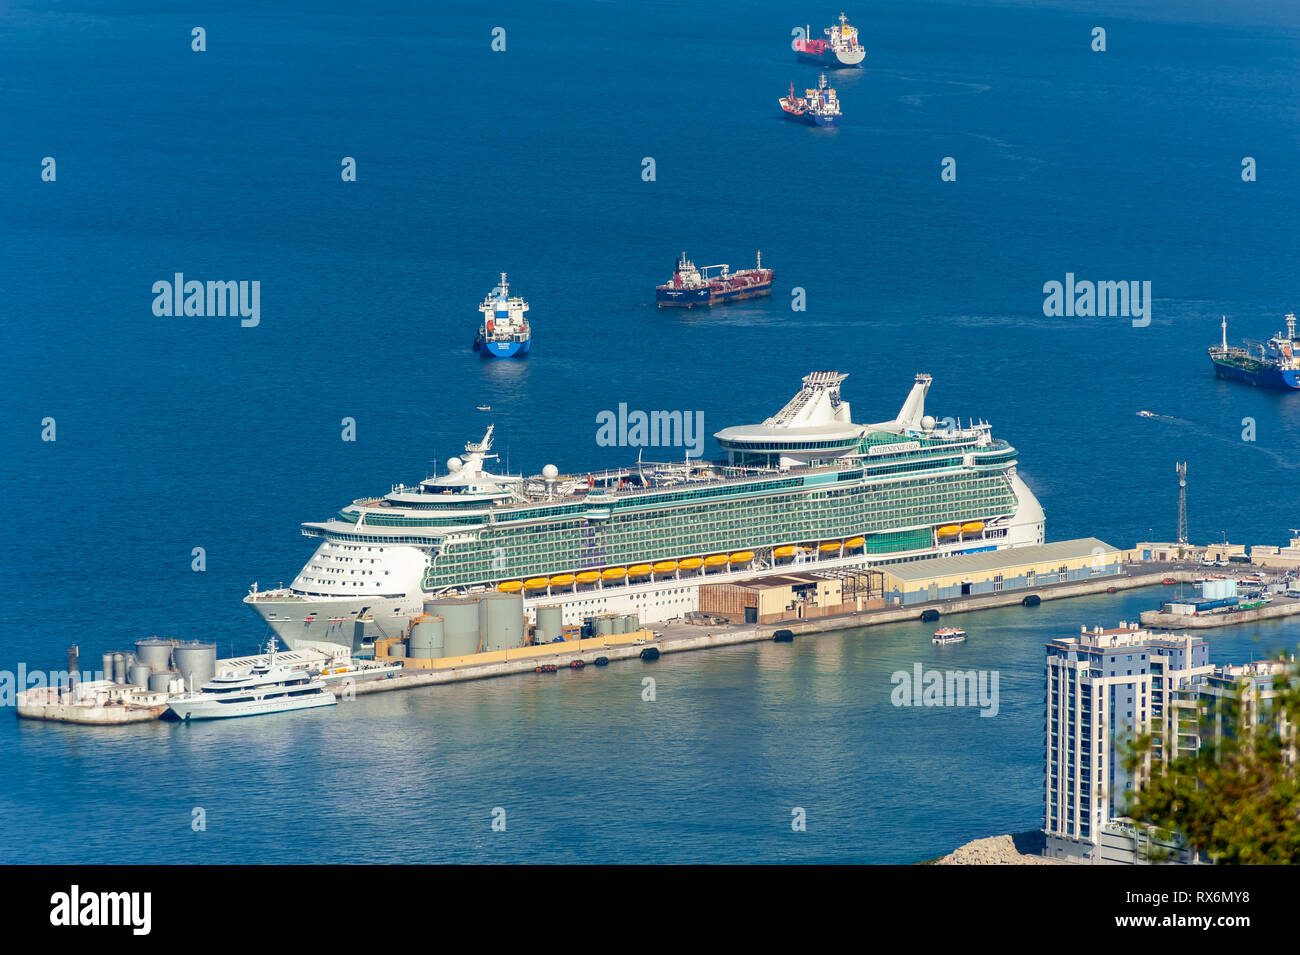 Royal Caribbean Independence of the Seas Cruise Ship in port at the Rock of Gibralter. - Stock Image